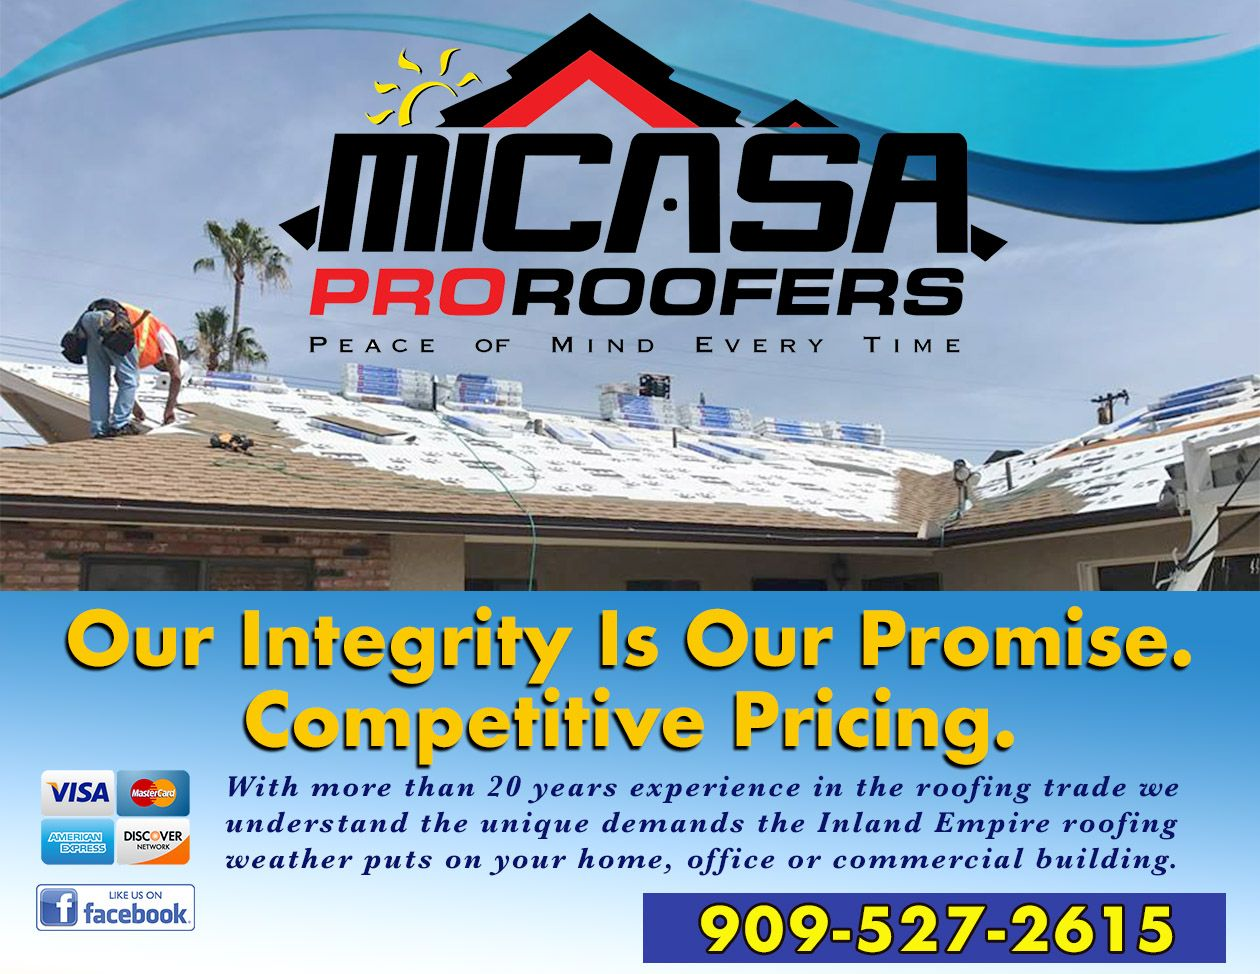 Micasa Pro Roofers Fotana Ads image by Micasa Roofing